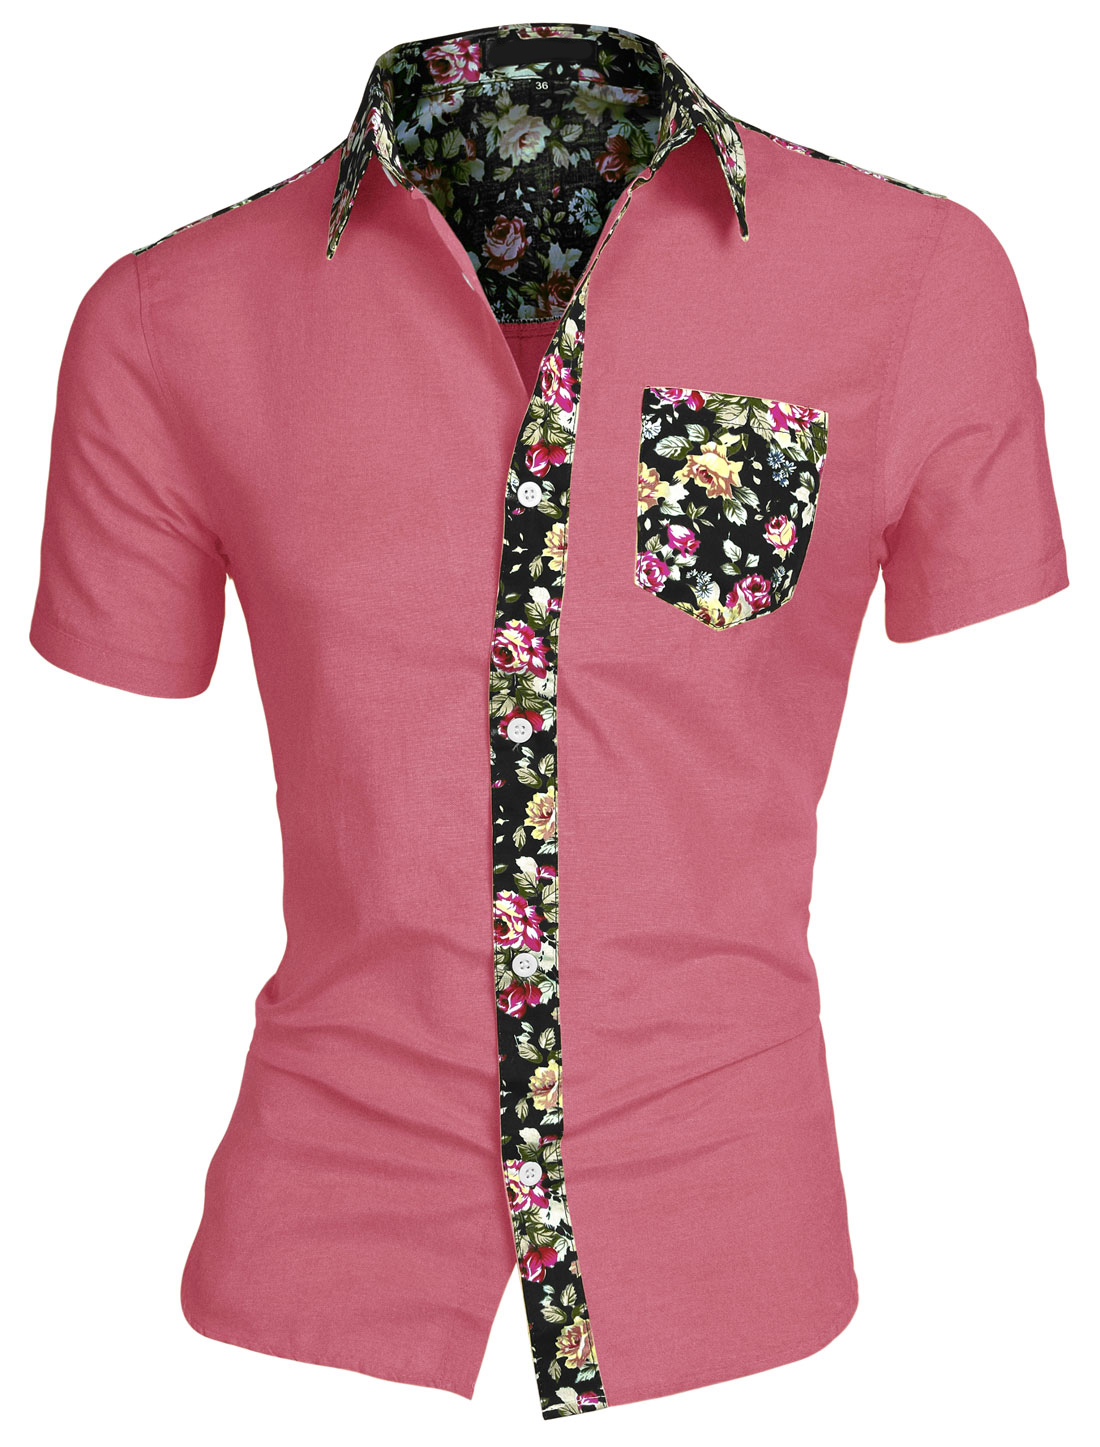 Men Floral Print Pocket Short Sleeve Button Down Hawaiian Shirt Fuchsia S